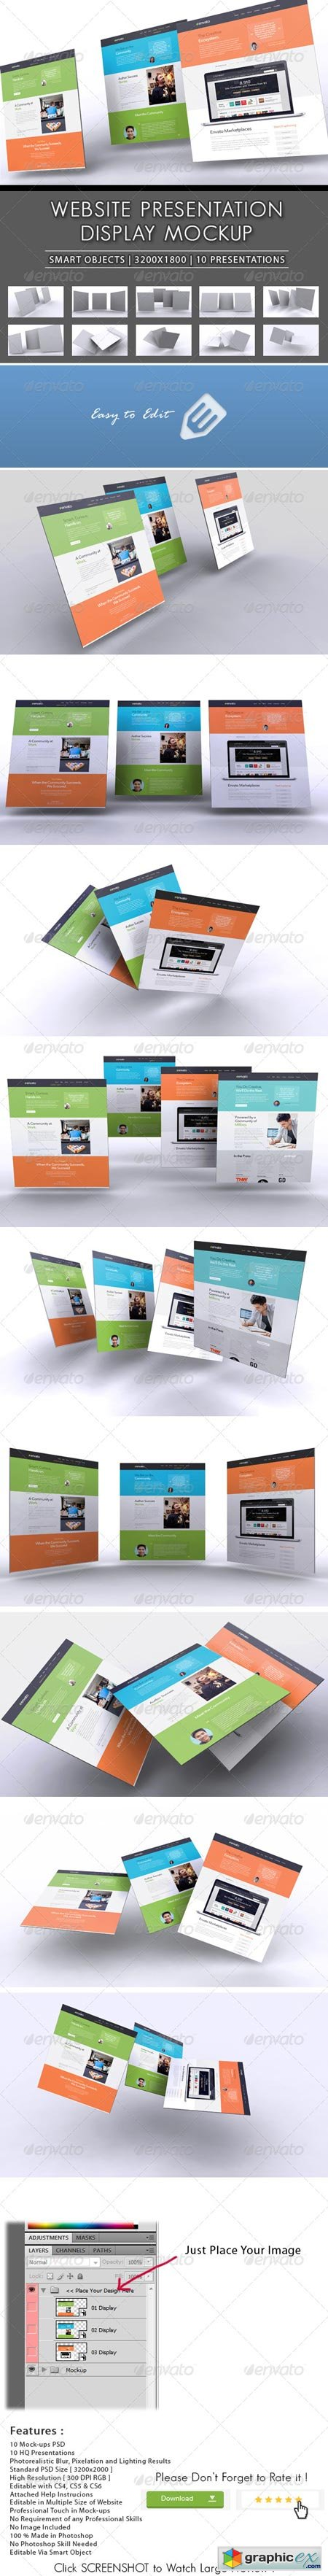 3D Website Presentation Mockup 8465536